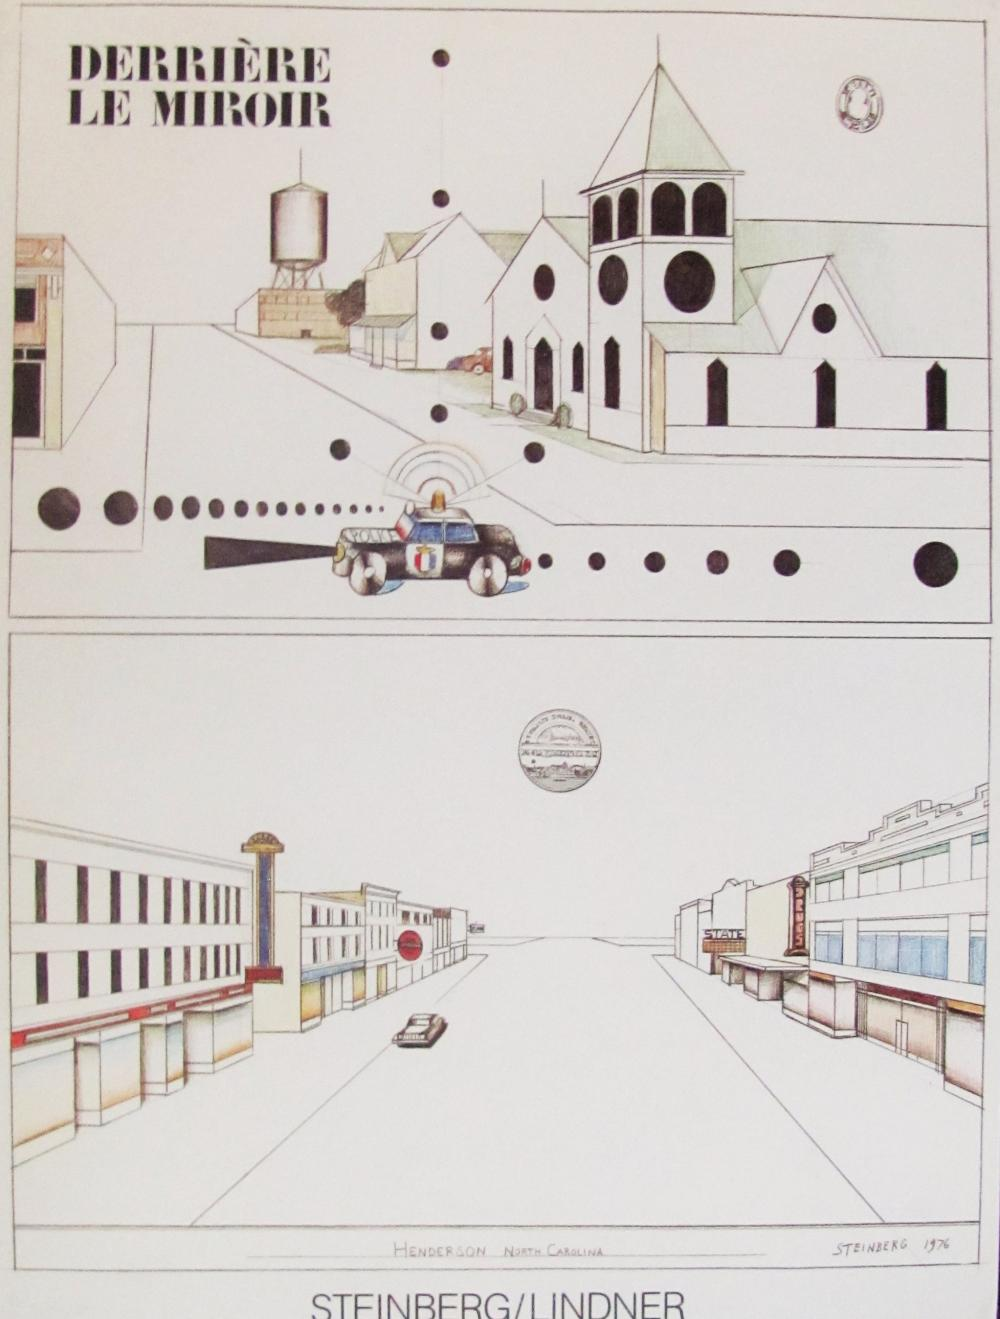 SAUL STEINBERG - DERRIERE LE MIROIR # 241 (COVER ONLY) - 1980